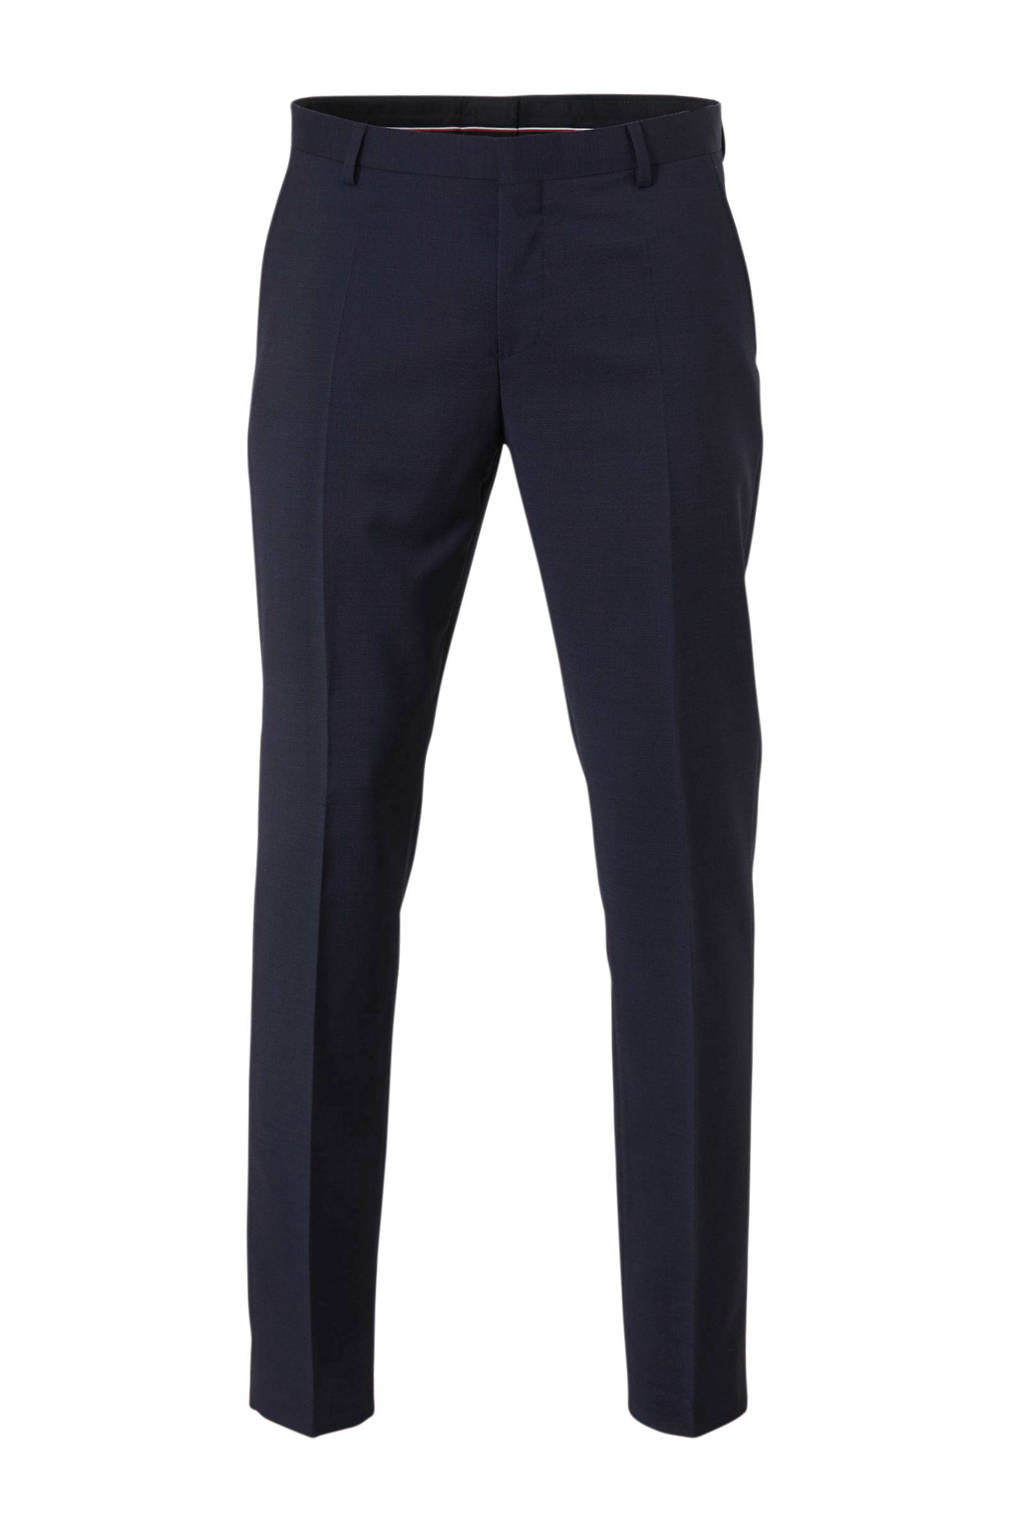 Tommy Hilfiger Tailored wollen regular fit pantalon met all over print marine, Marine